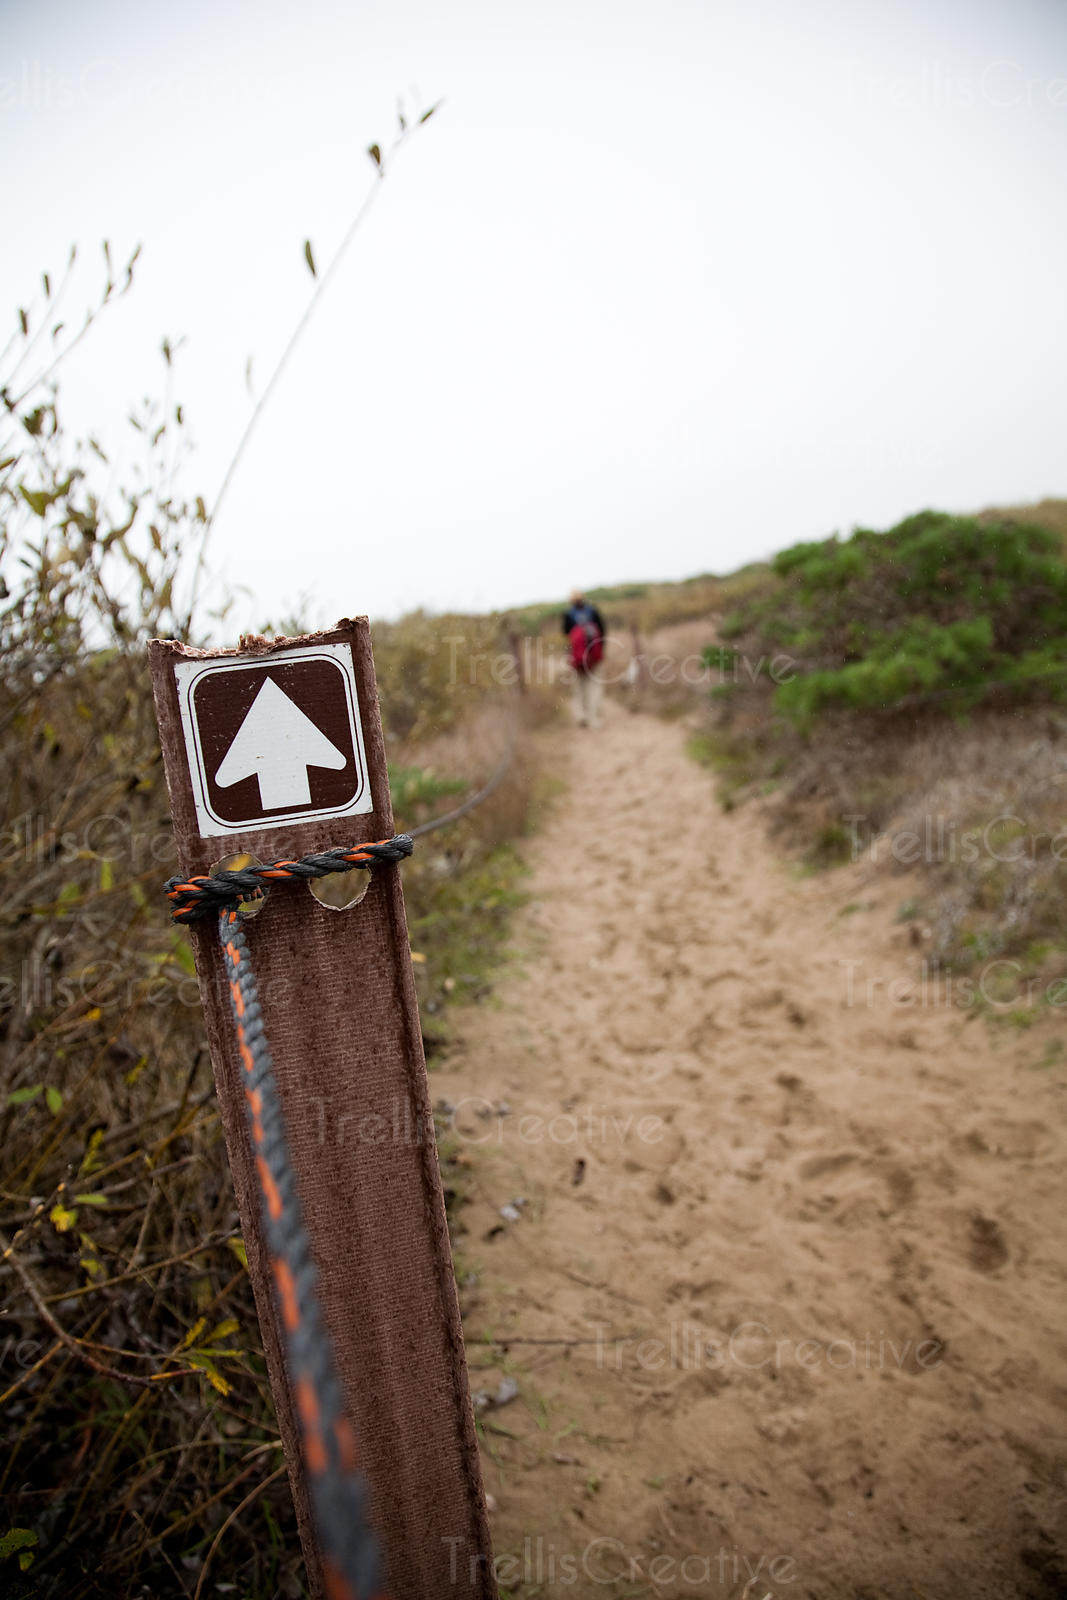 White arrow sign with a person at distant walking on the beach at Ano Nuevo State Reserve